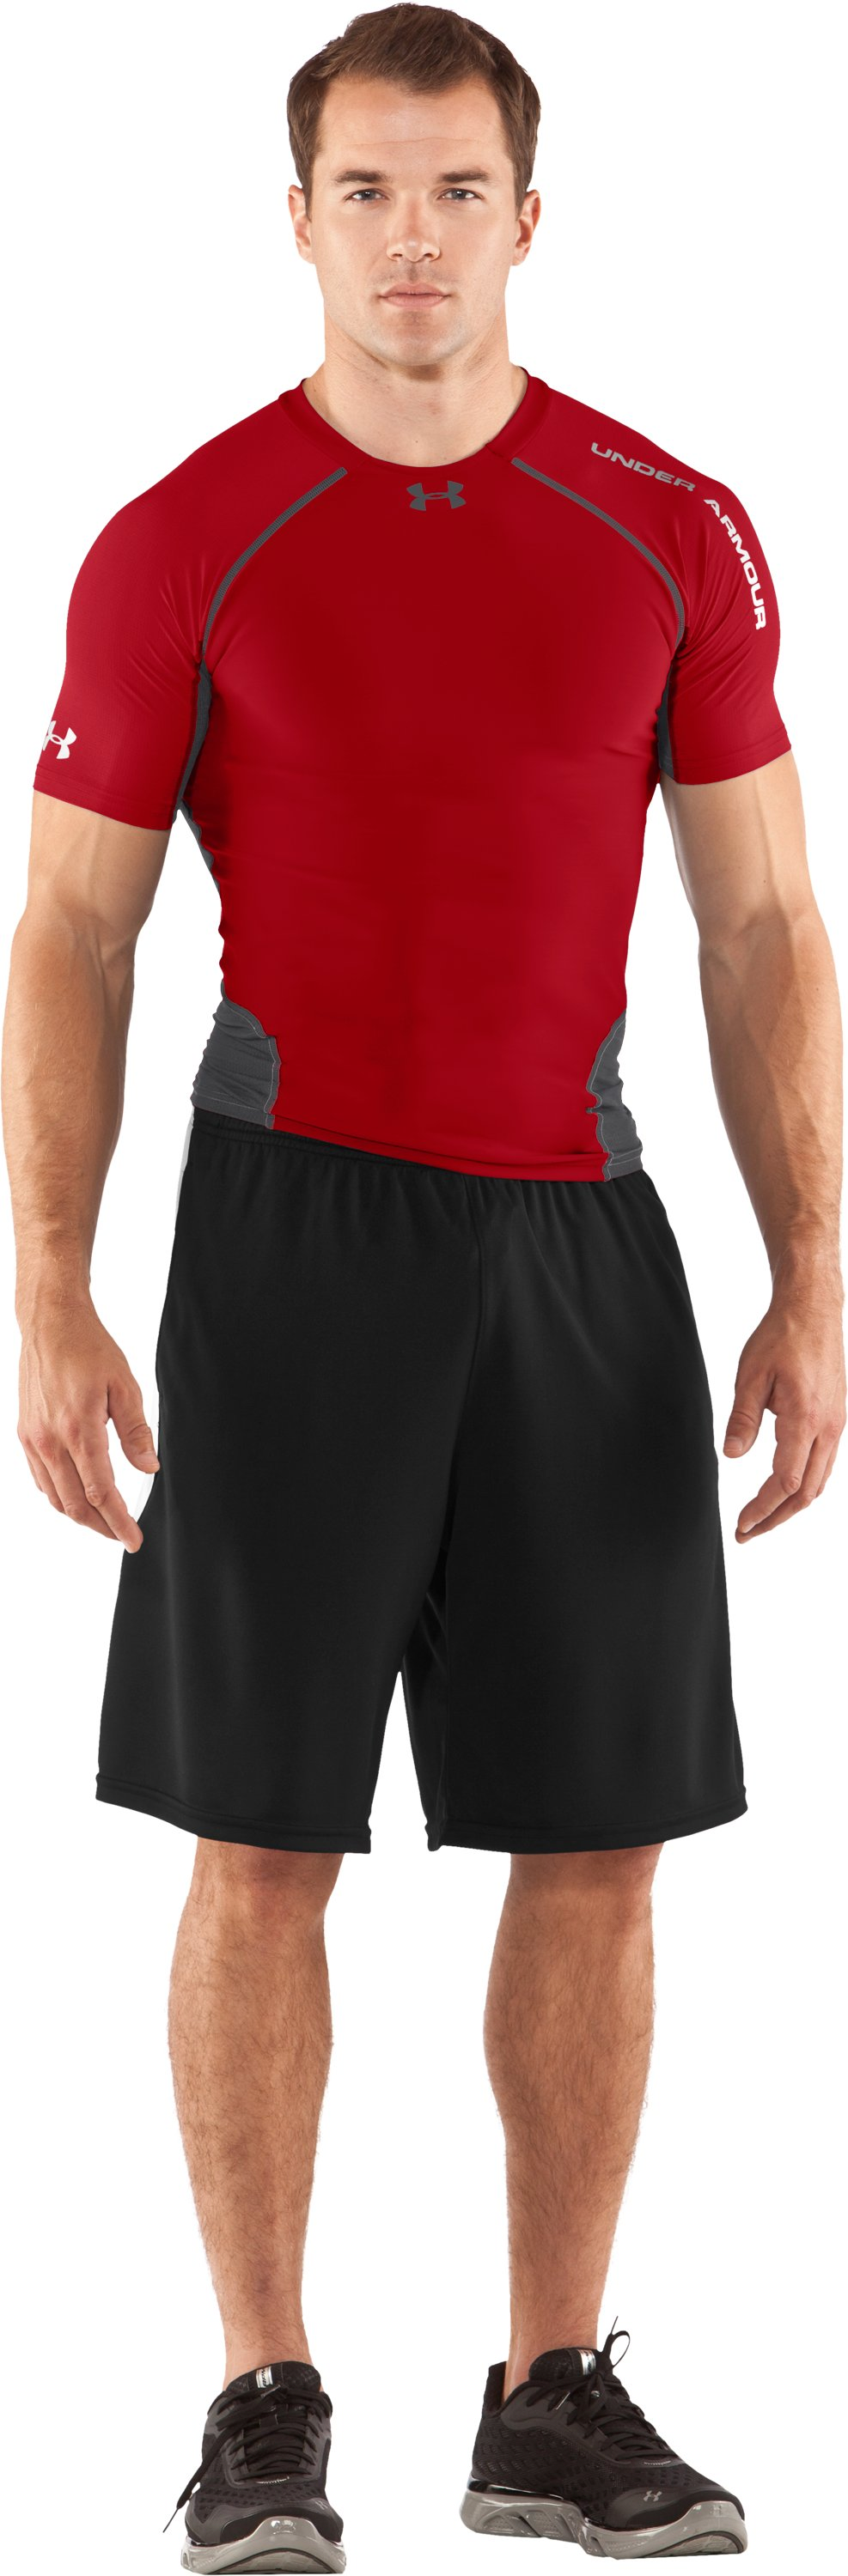 Men's HeatGear® Stretch Woven Short Sleeve, Red